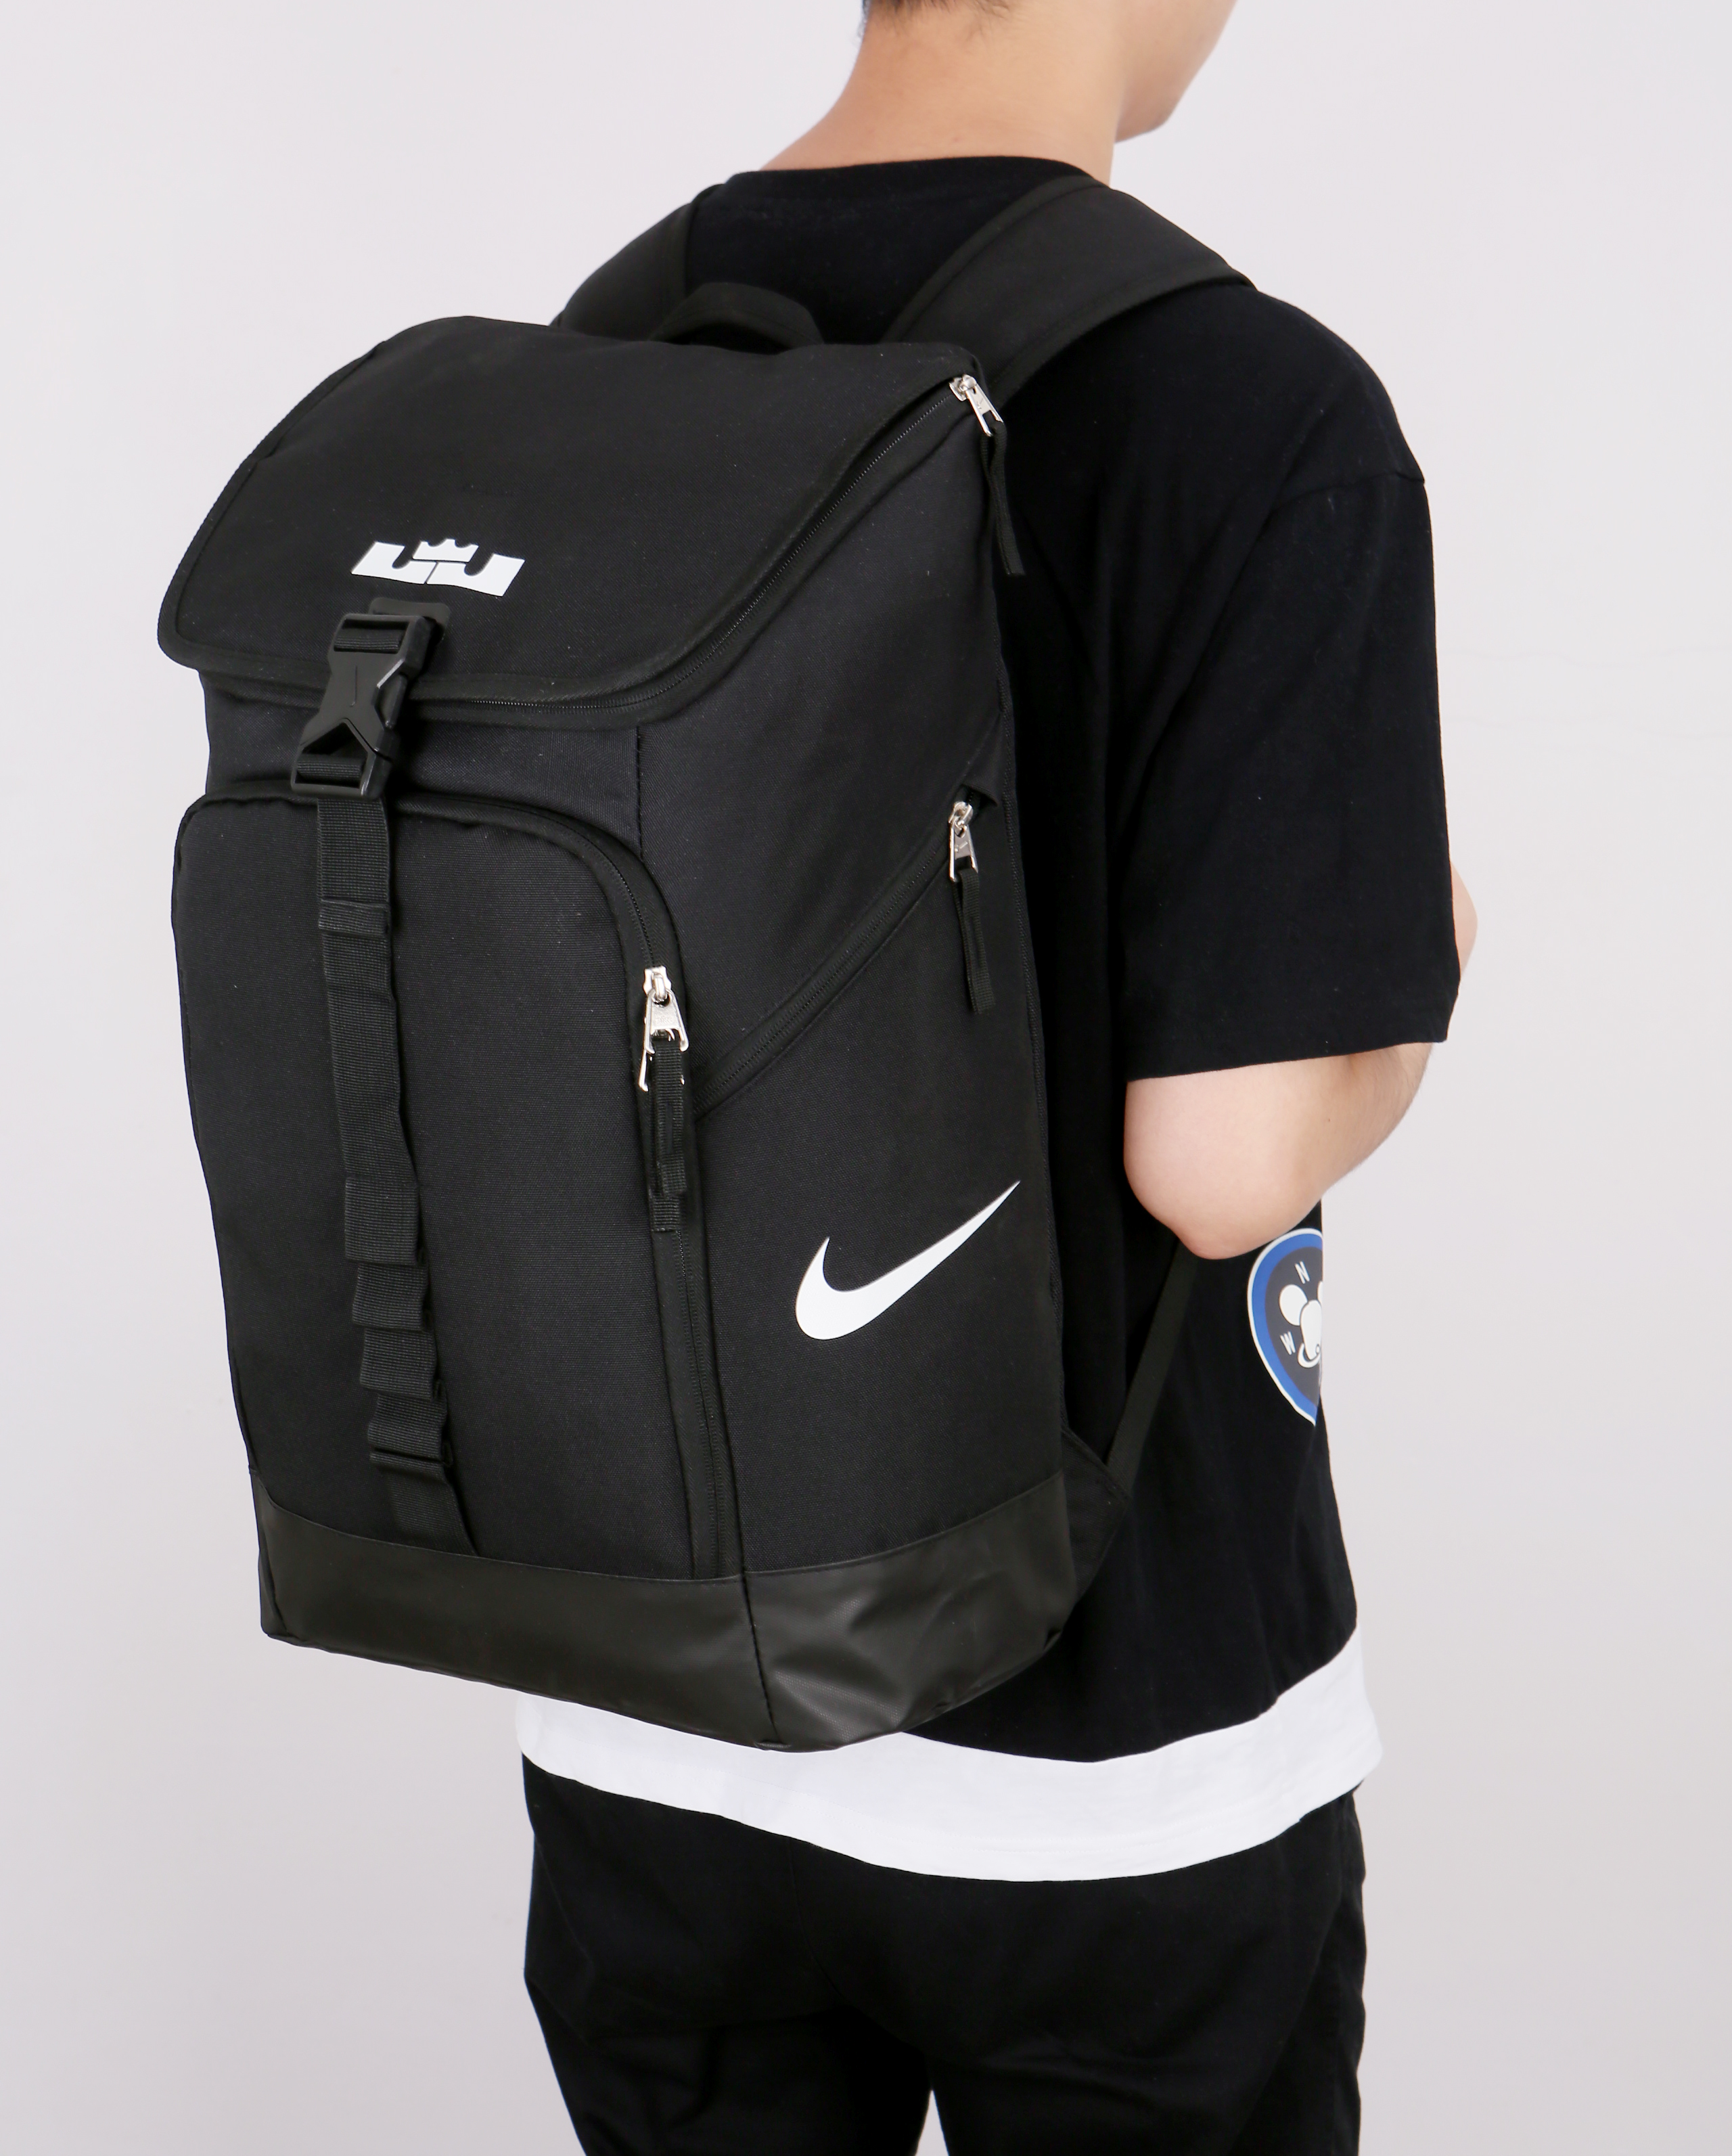 Nike LeBron Backpack Black White